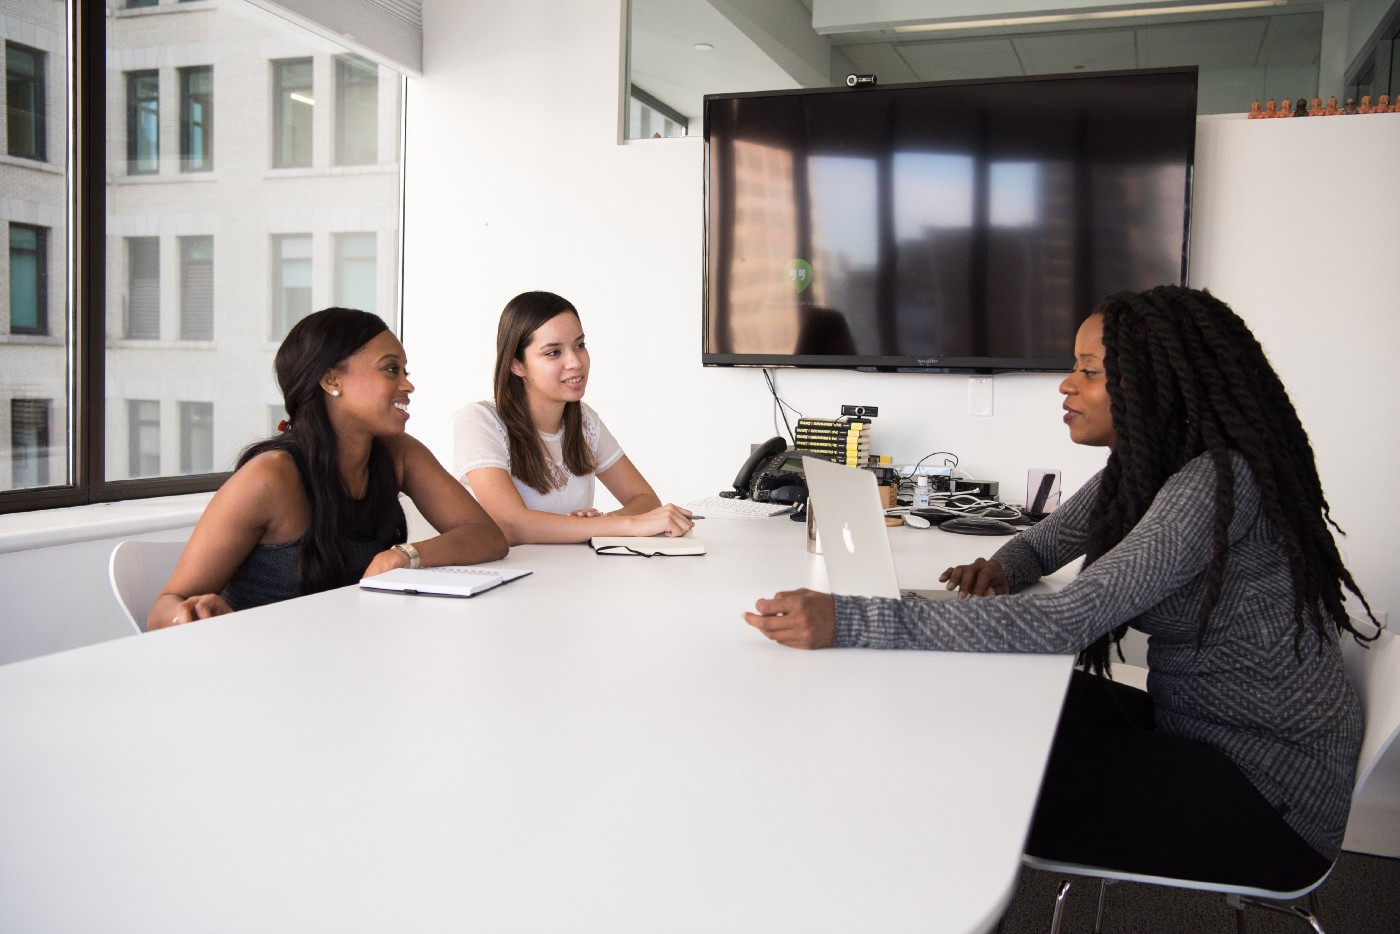 Females in a meeting